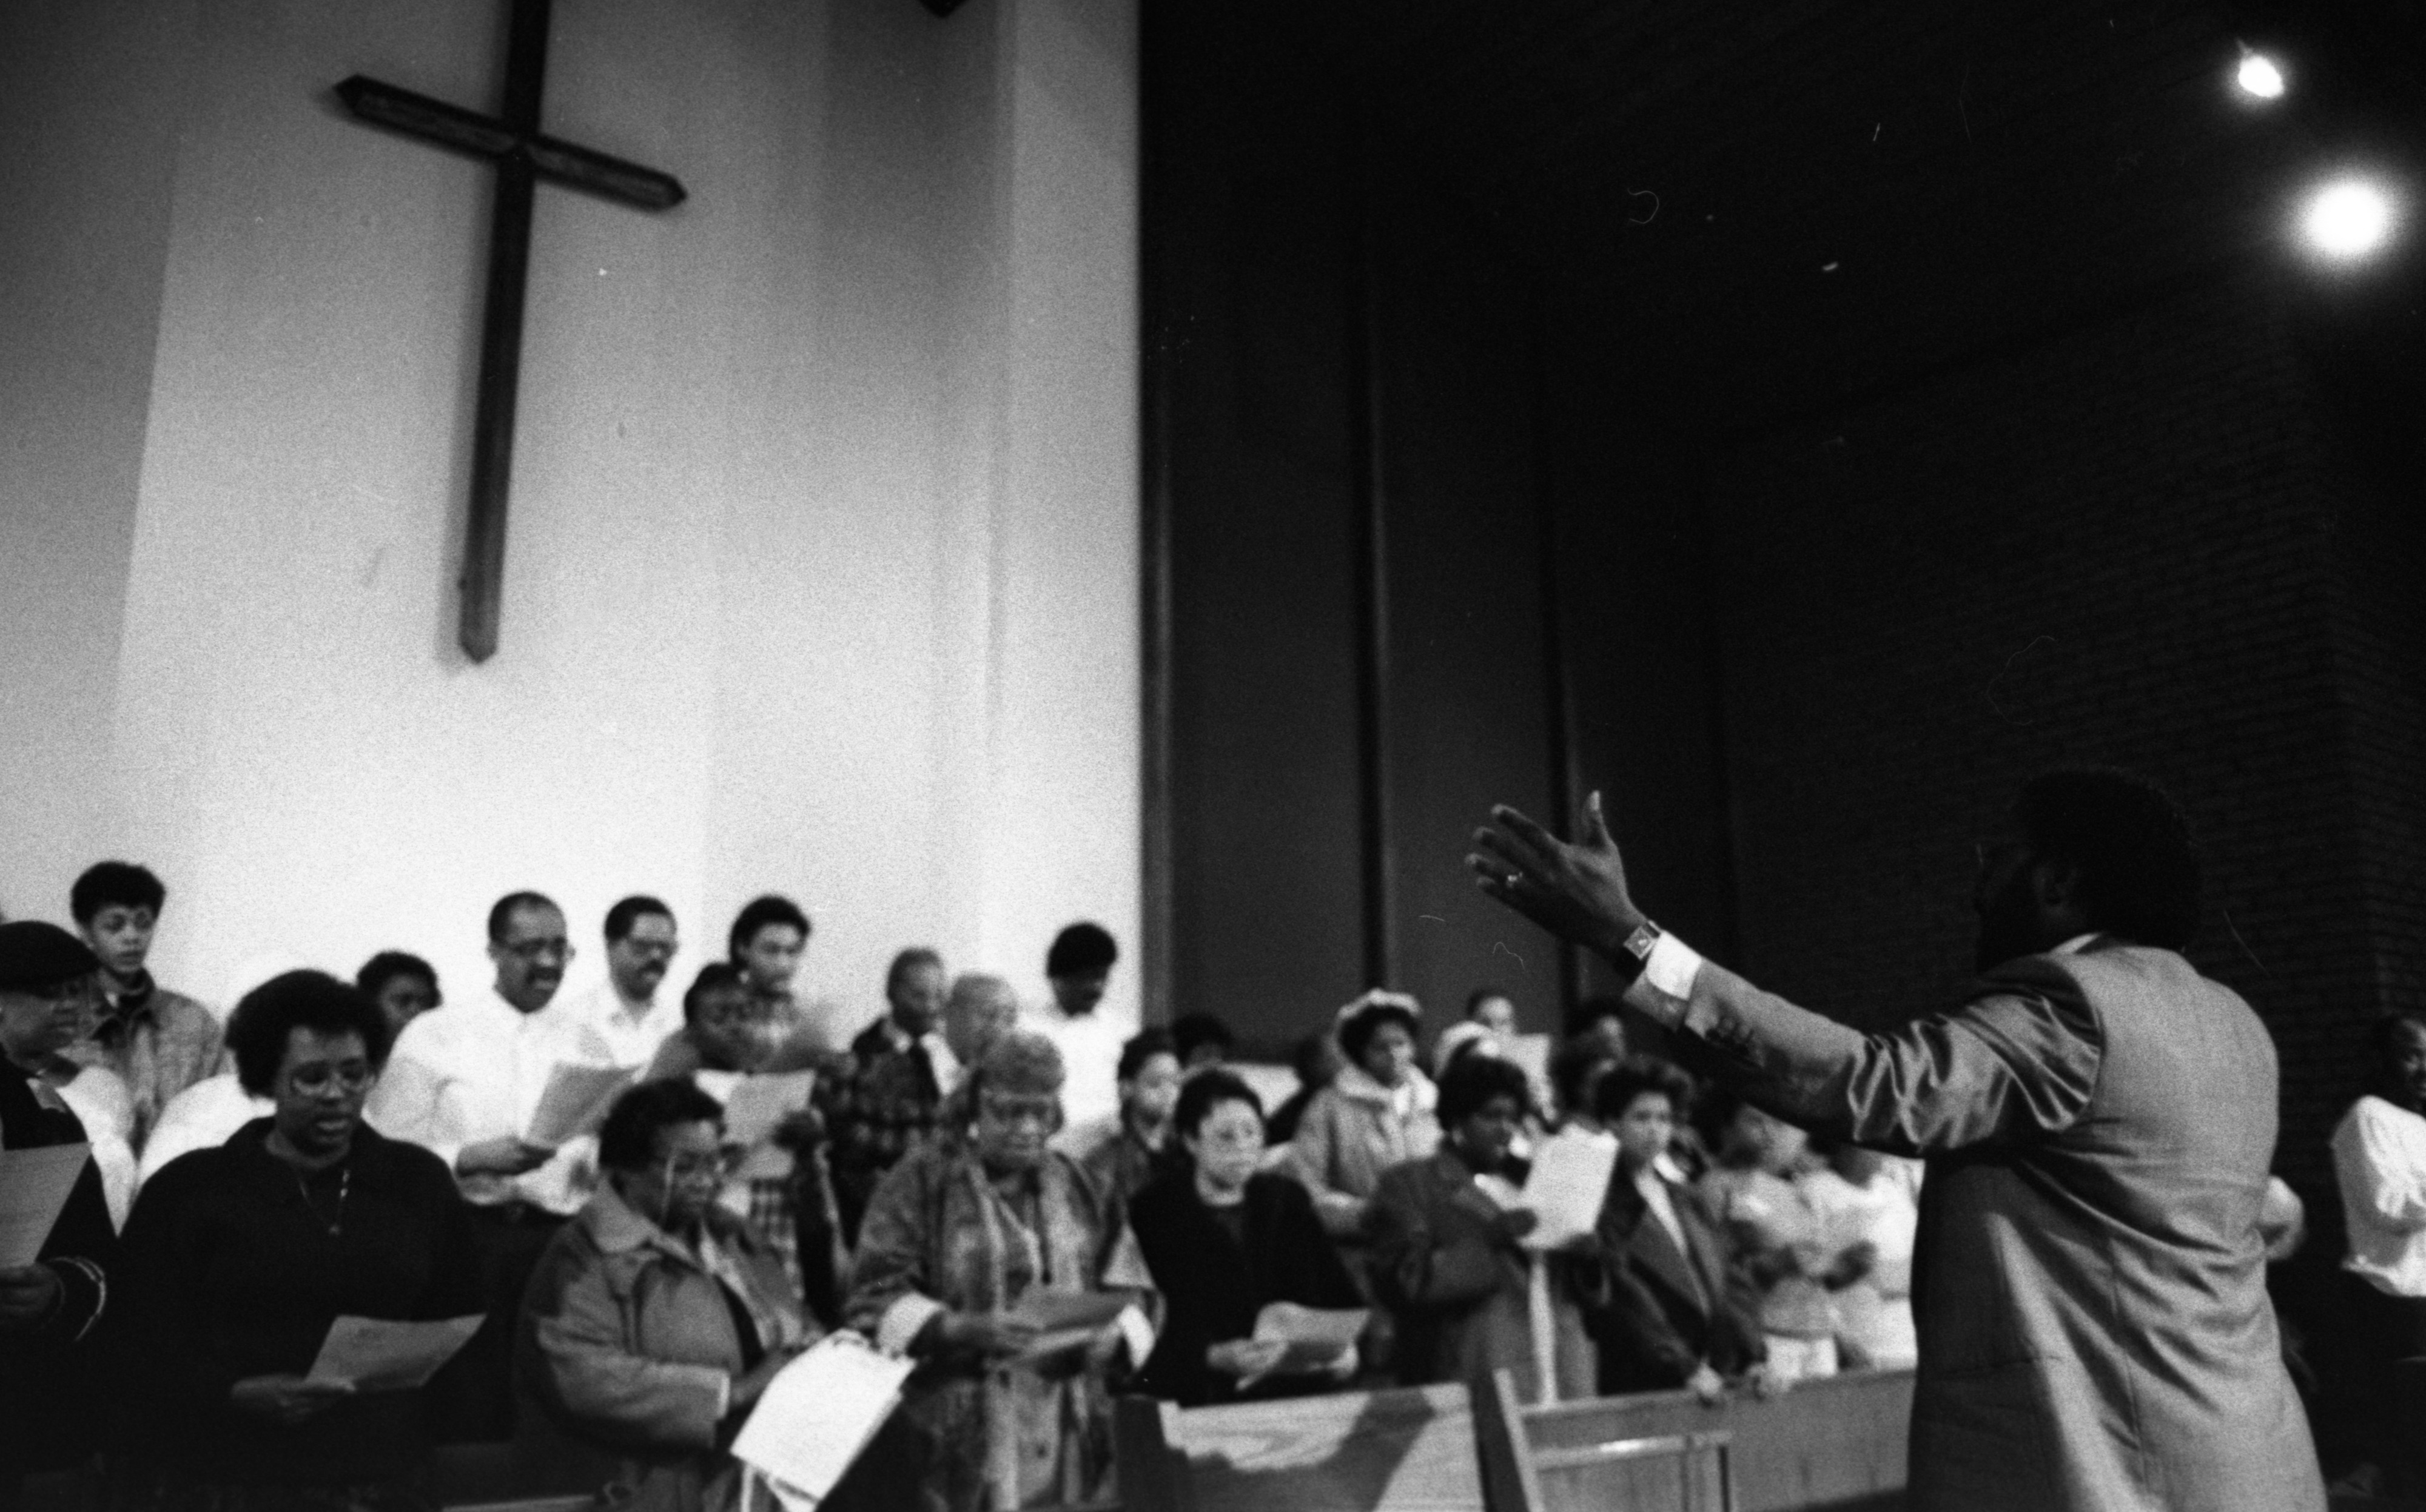 Ministerial Alliance Choir  Rehearsing at Second Baptist Church, April 1990 image